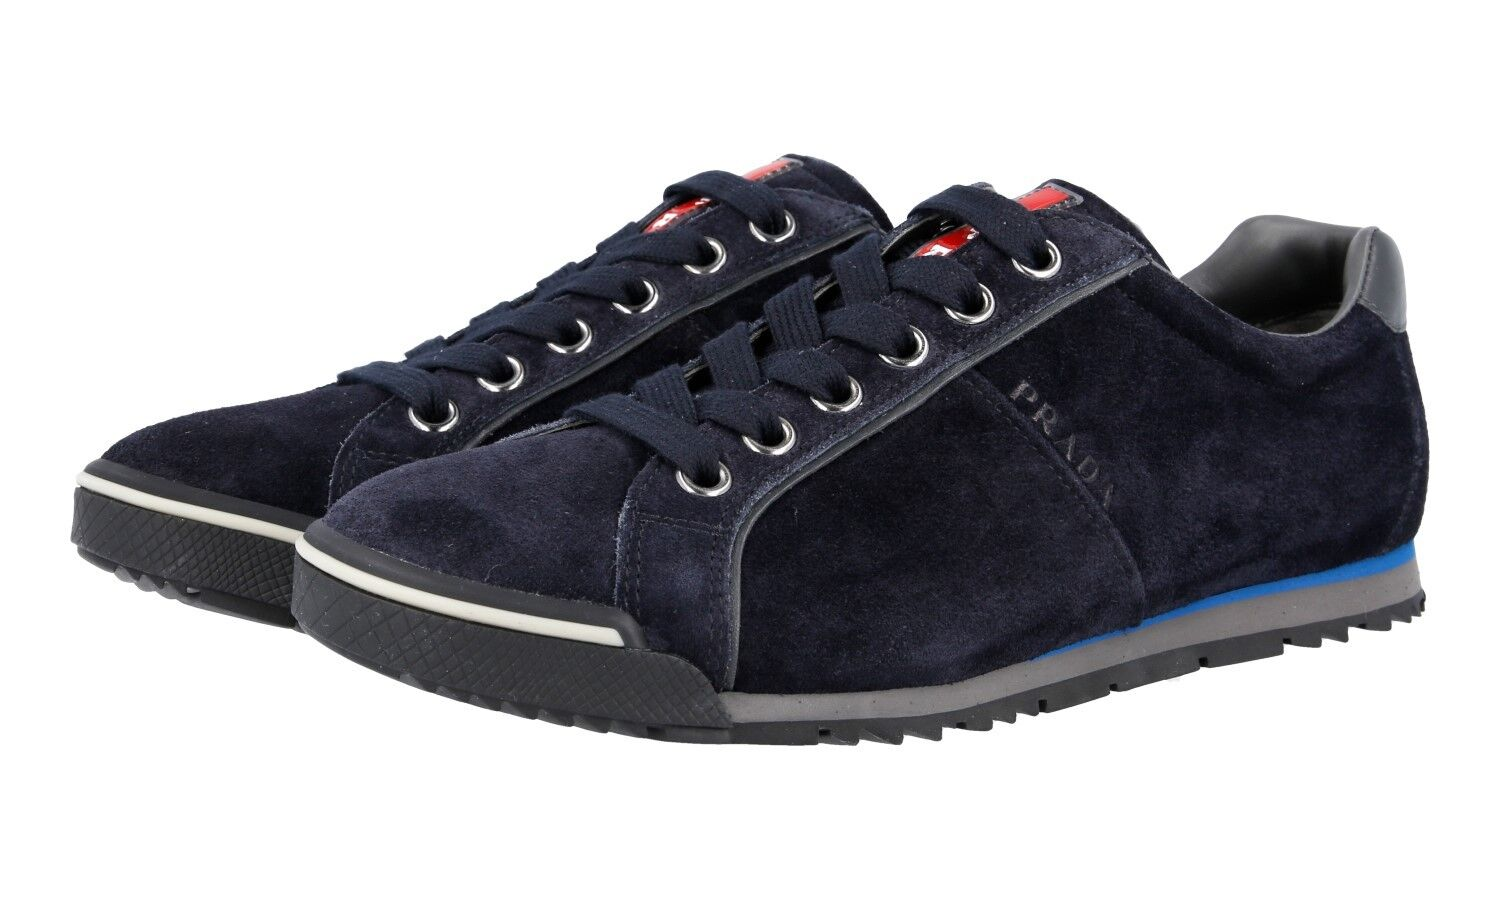 AUTH LUXURY PRADA SNEAKERS SHOES 4E2719 blueE SUEDE NEW US 7 EU 40 40,5